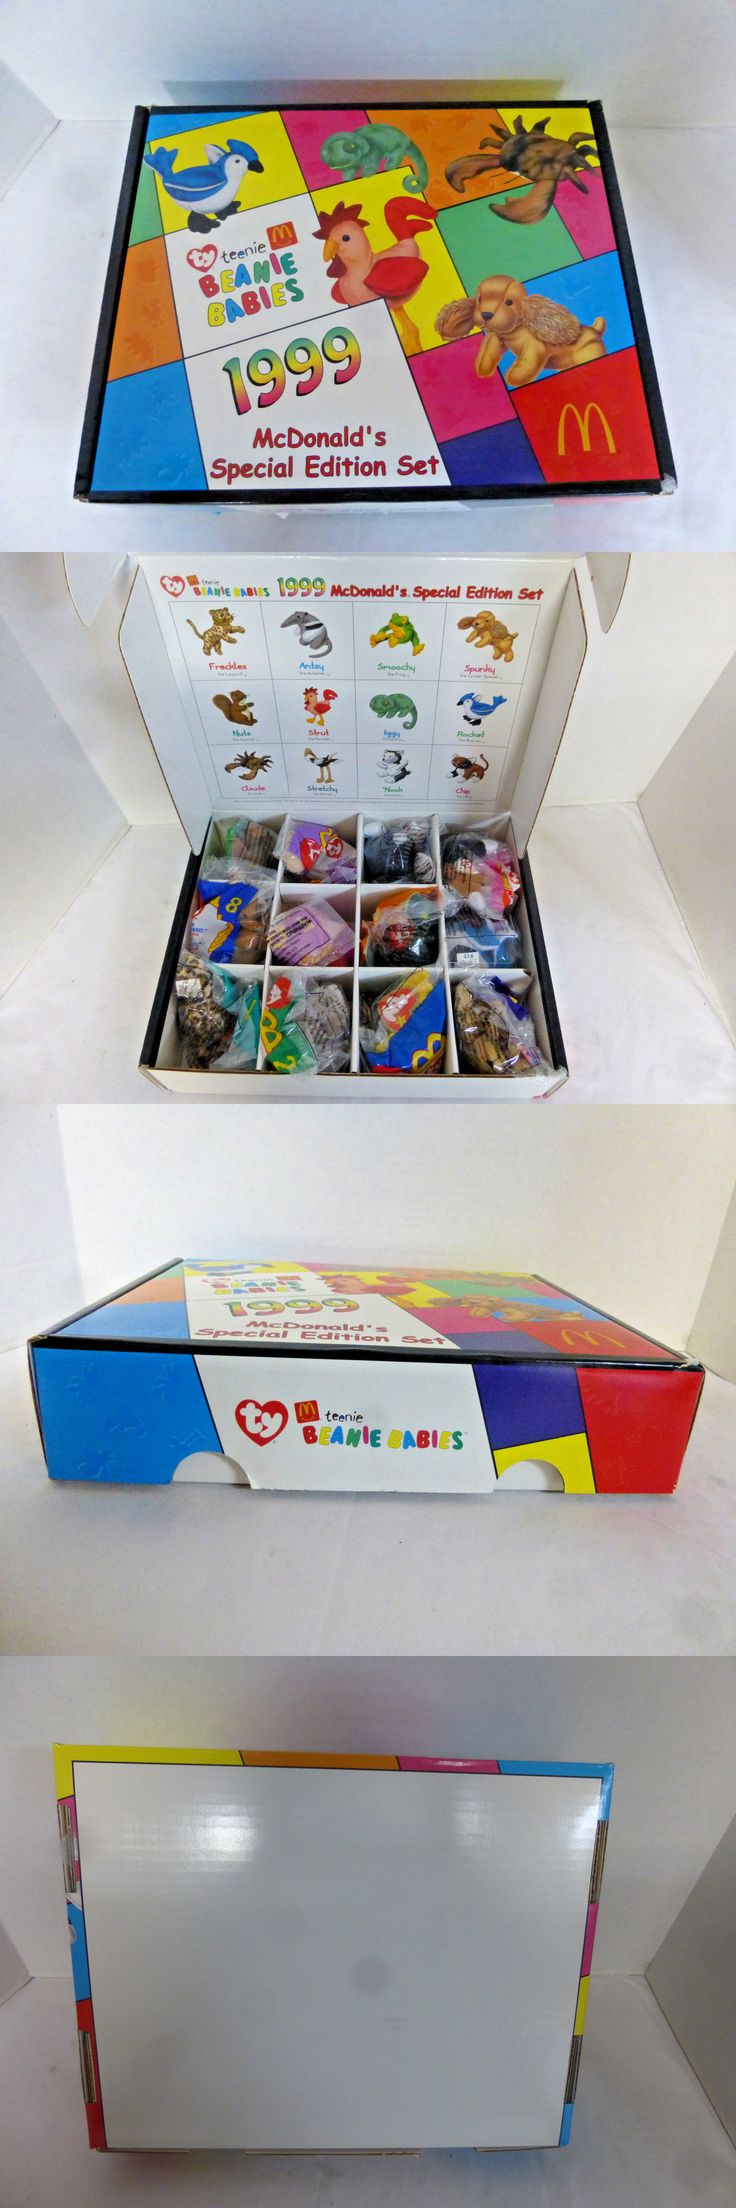 Teenie Beanies 441: 1999 Mcdonald S Happy Meal Collector Box Set Ty Teenie Beanie Babies New In Box -> BUY IT NOW ONLY: $34.95 on eBay!